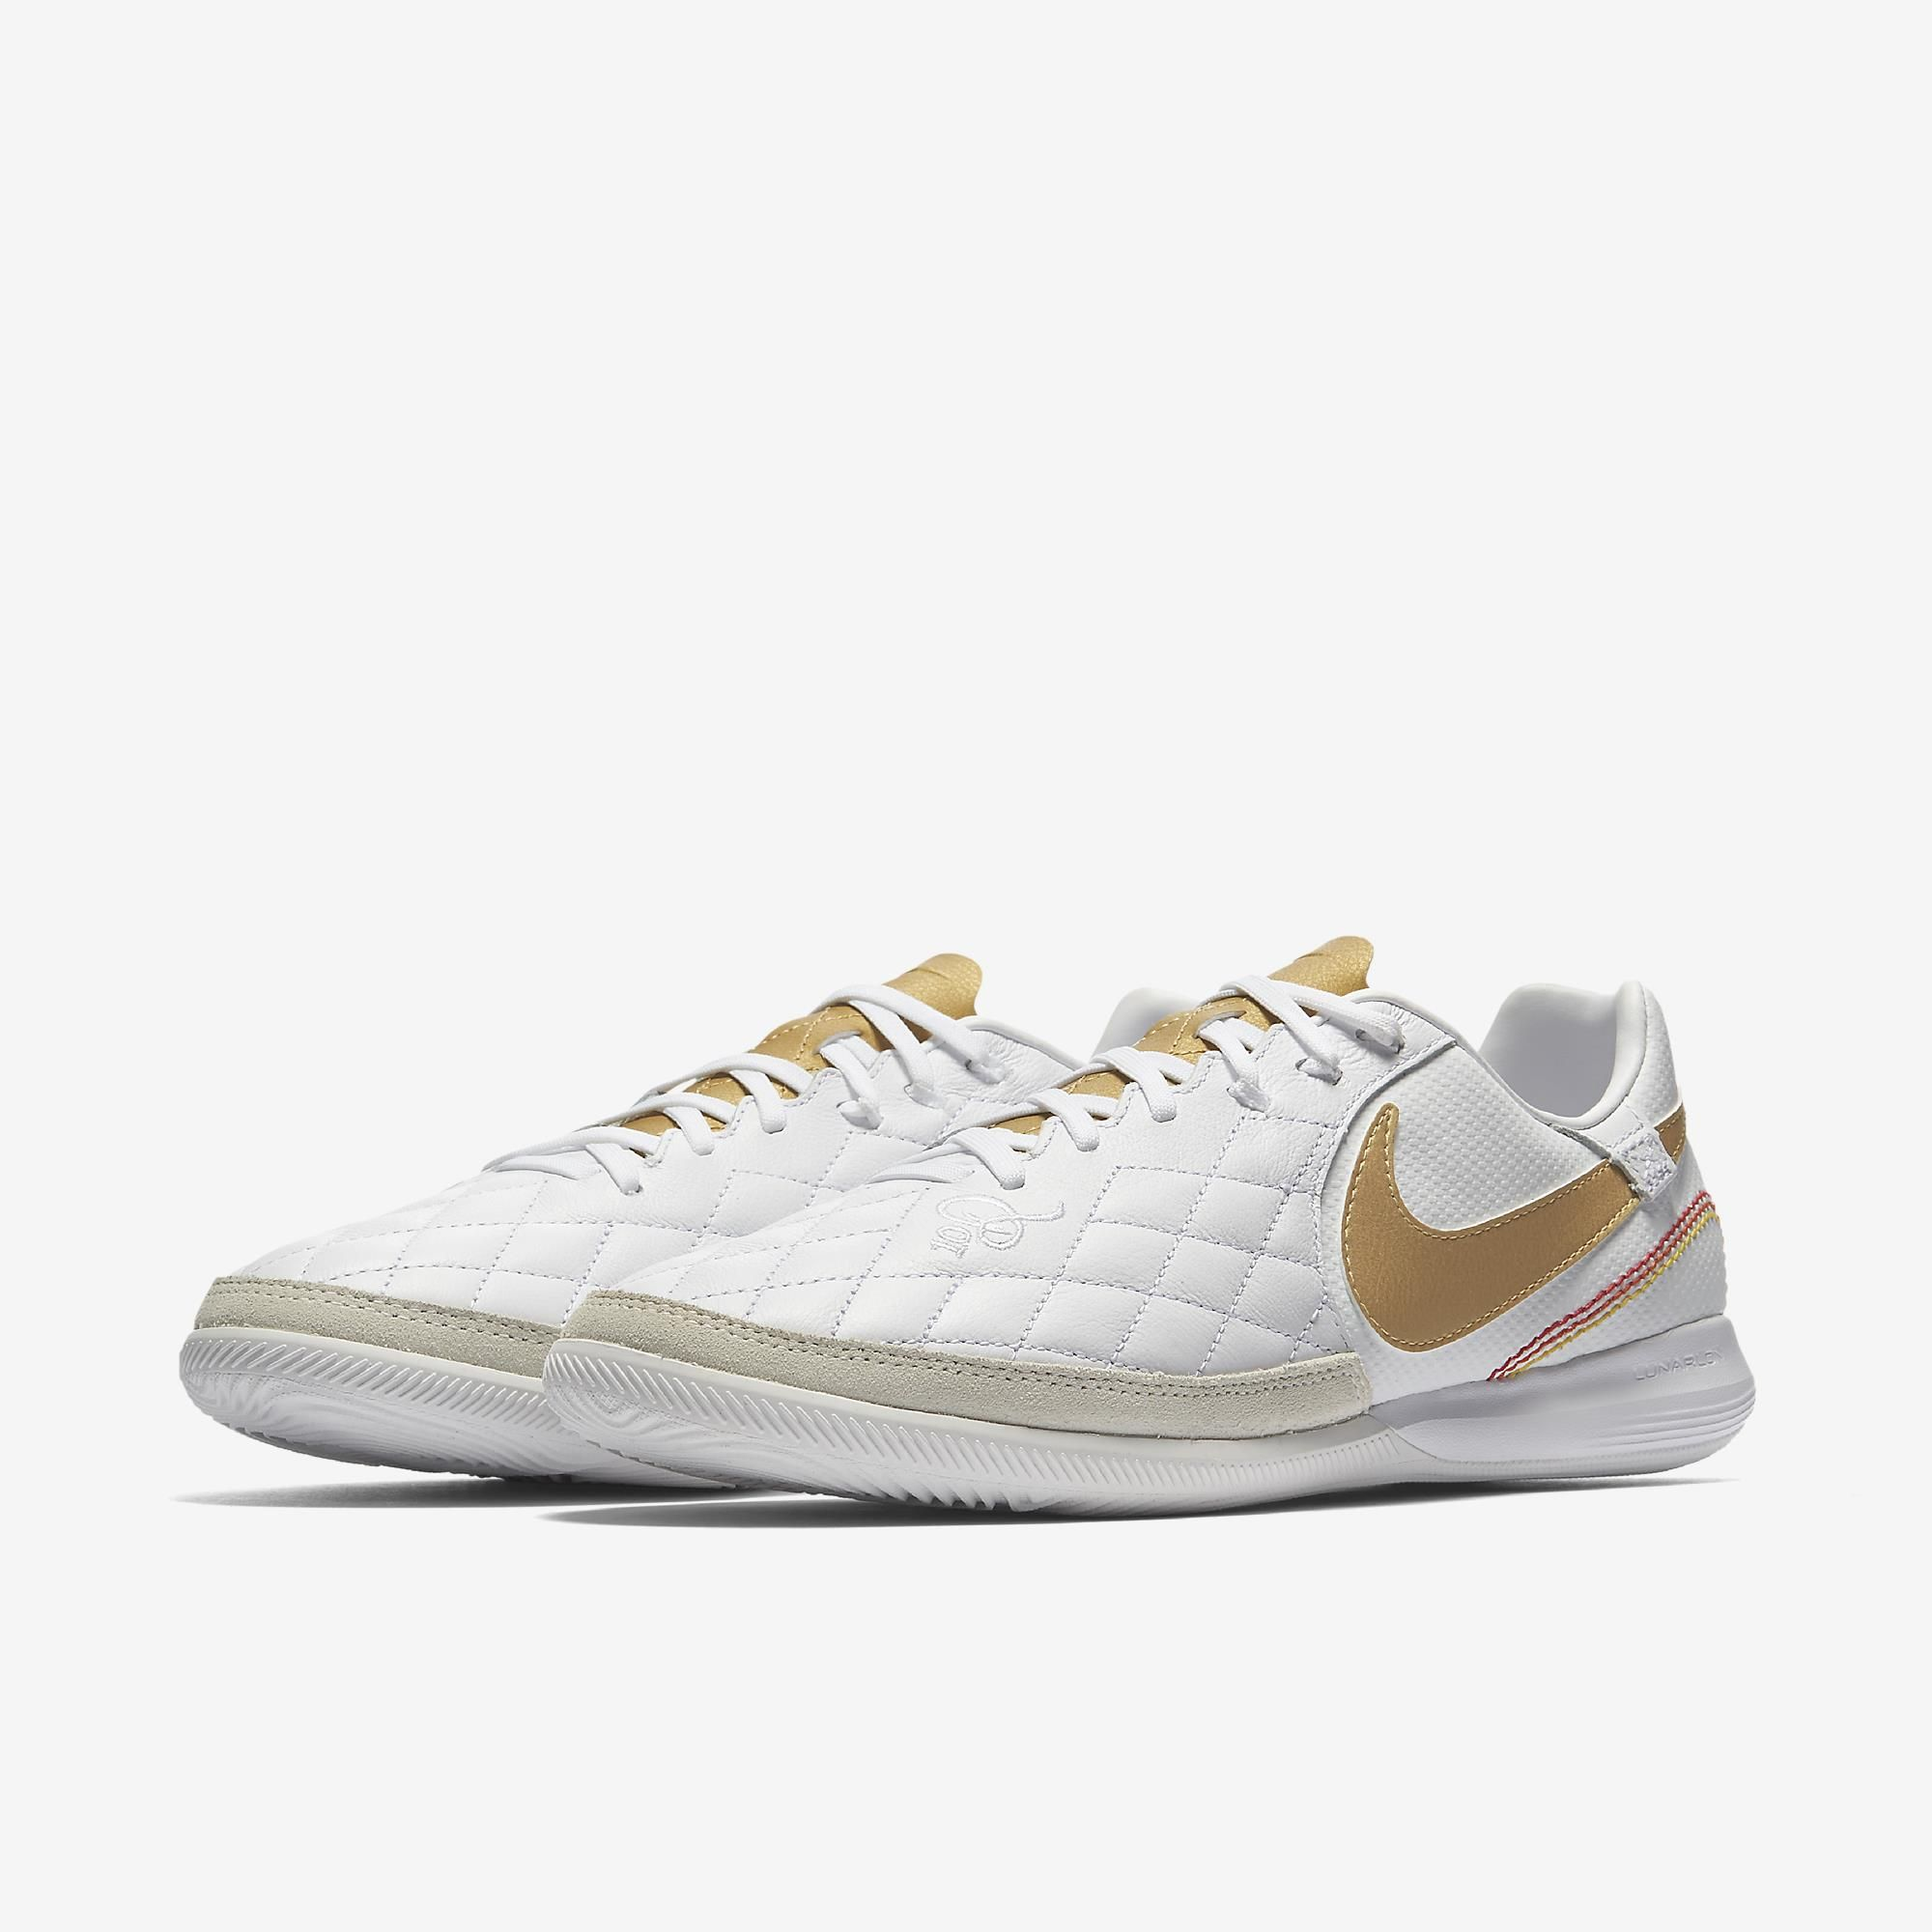 new high quality pretty nice lowest discount CHUTEIRA NIKE TIEMPOX LUNAR LEGEND 7 10R PRO FUTSAL | Chuteiras ...